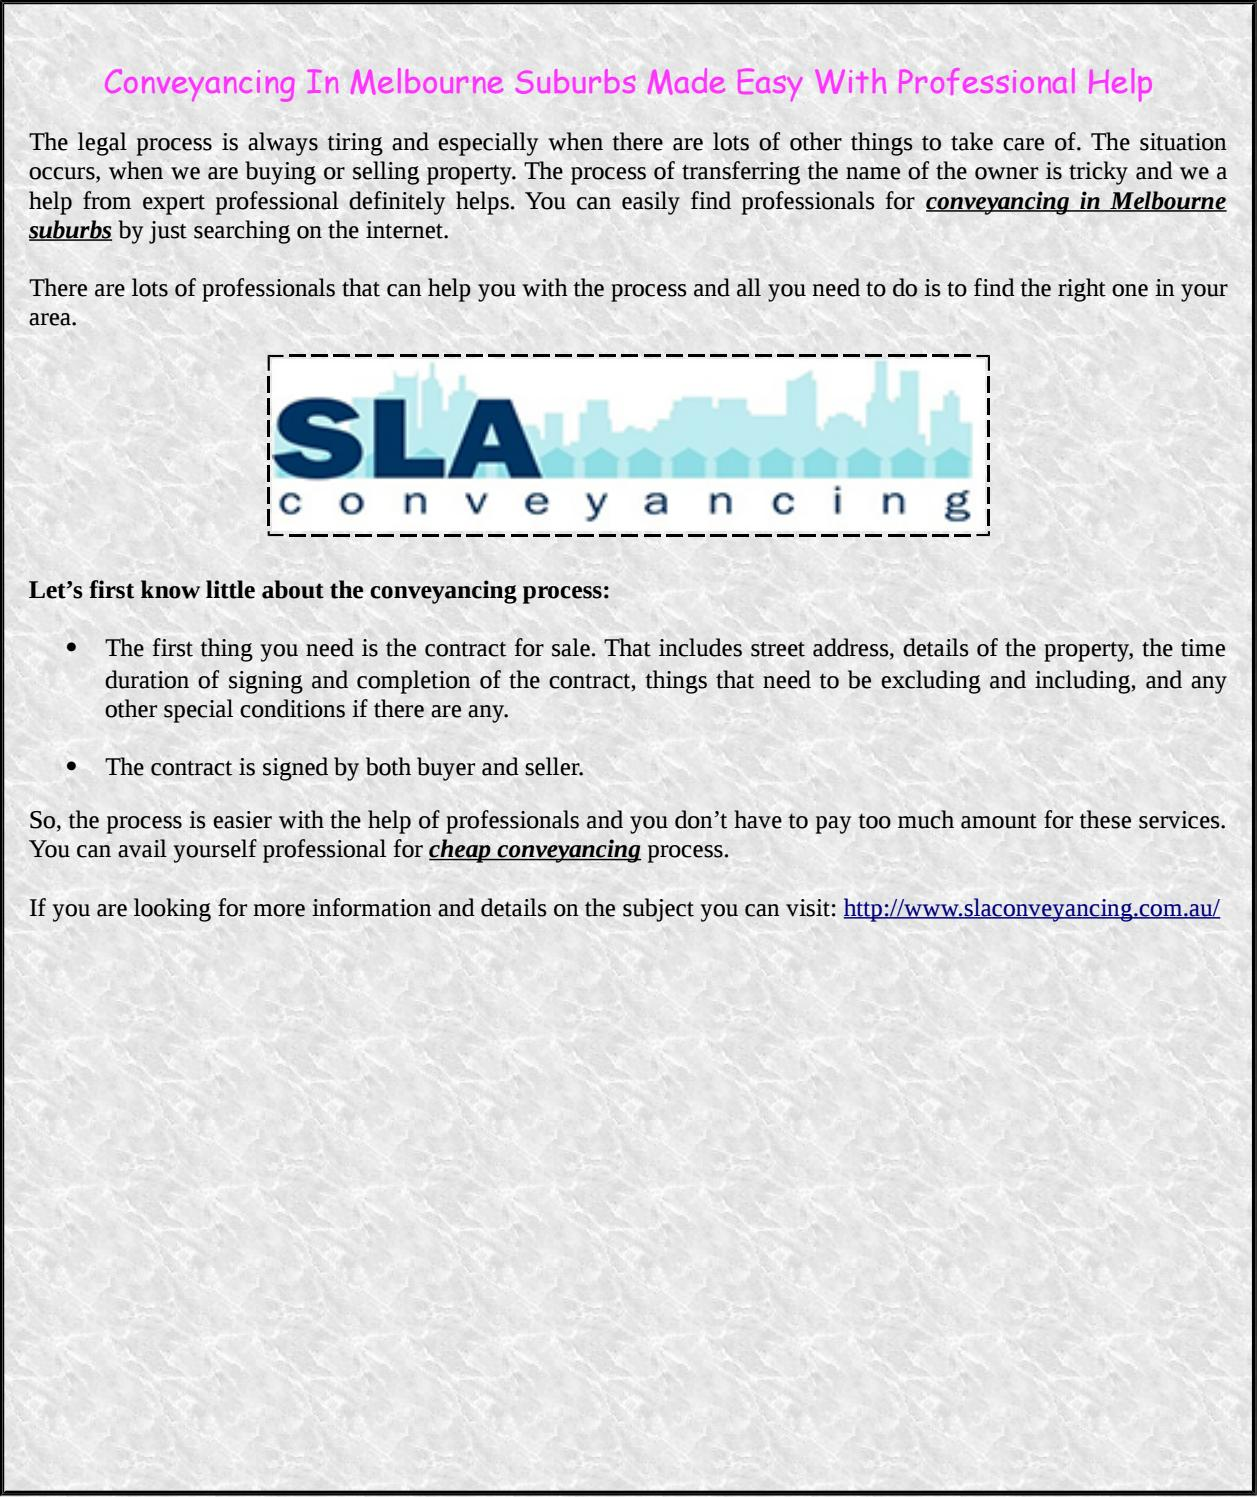 Conveyancing in melbourne suburbs made easy with professional help conveyancing in melbourne suburbs made easy with professional help by sla conveyancing issuu solutioingenieria Images